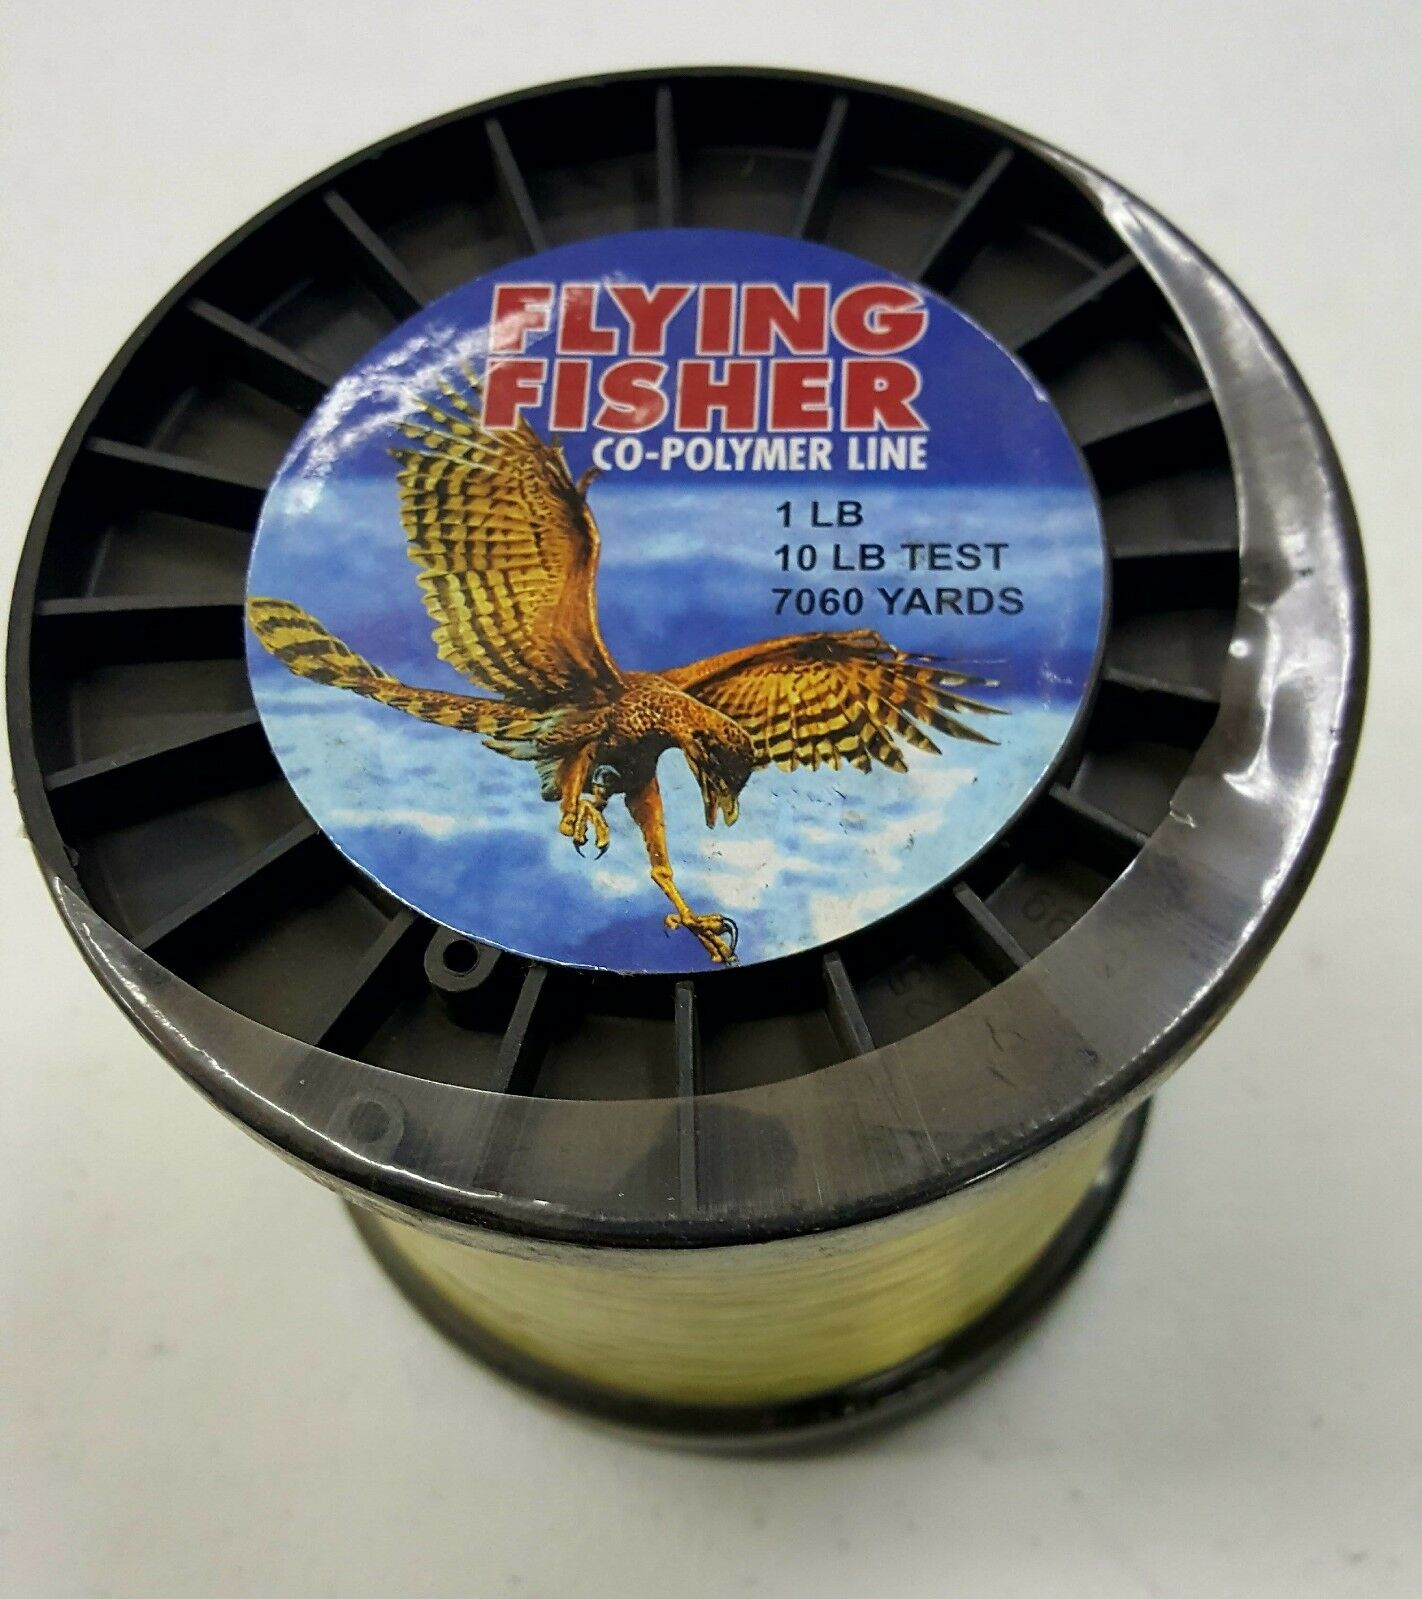 10 Lb.  7060 Yards Flying Fisher Copolymer Fishing Line  a lot of concessions